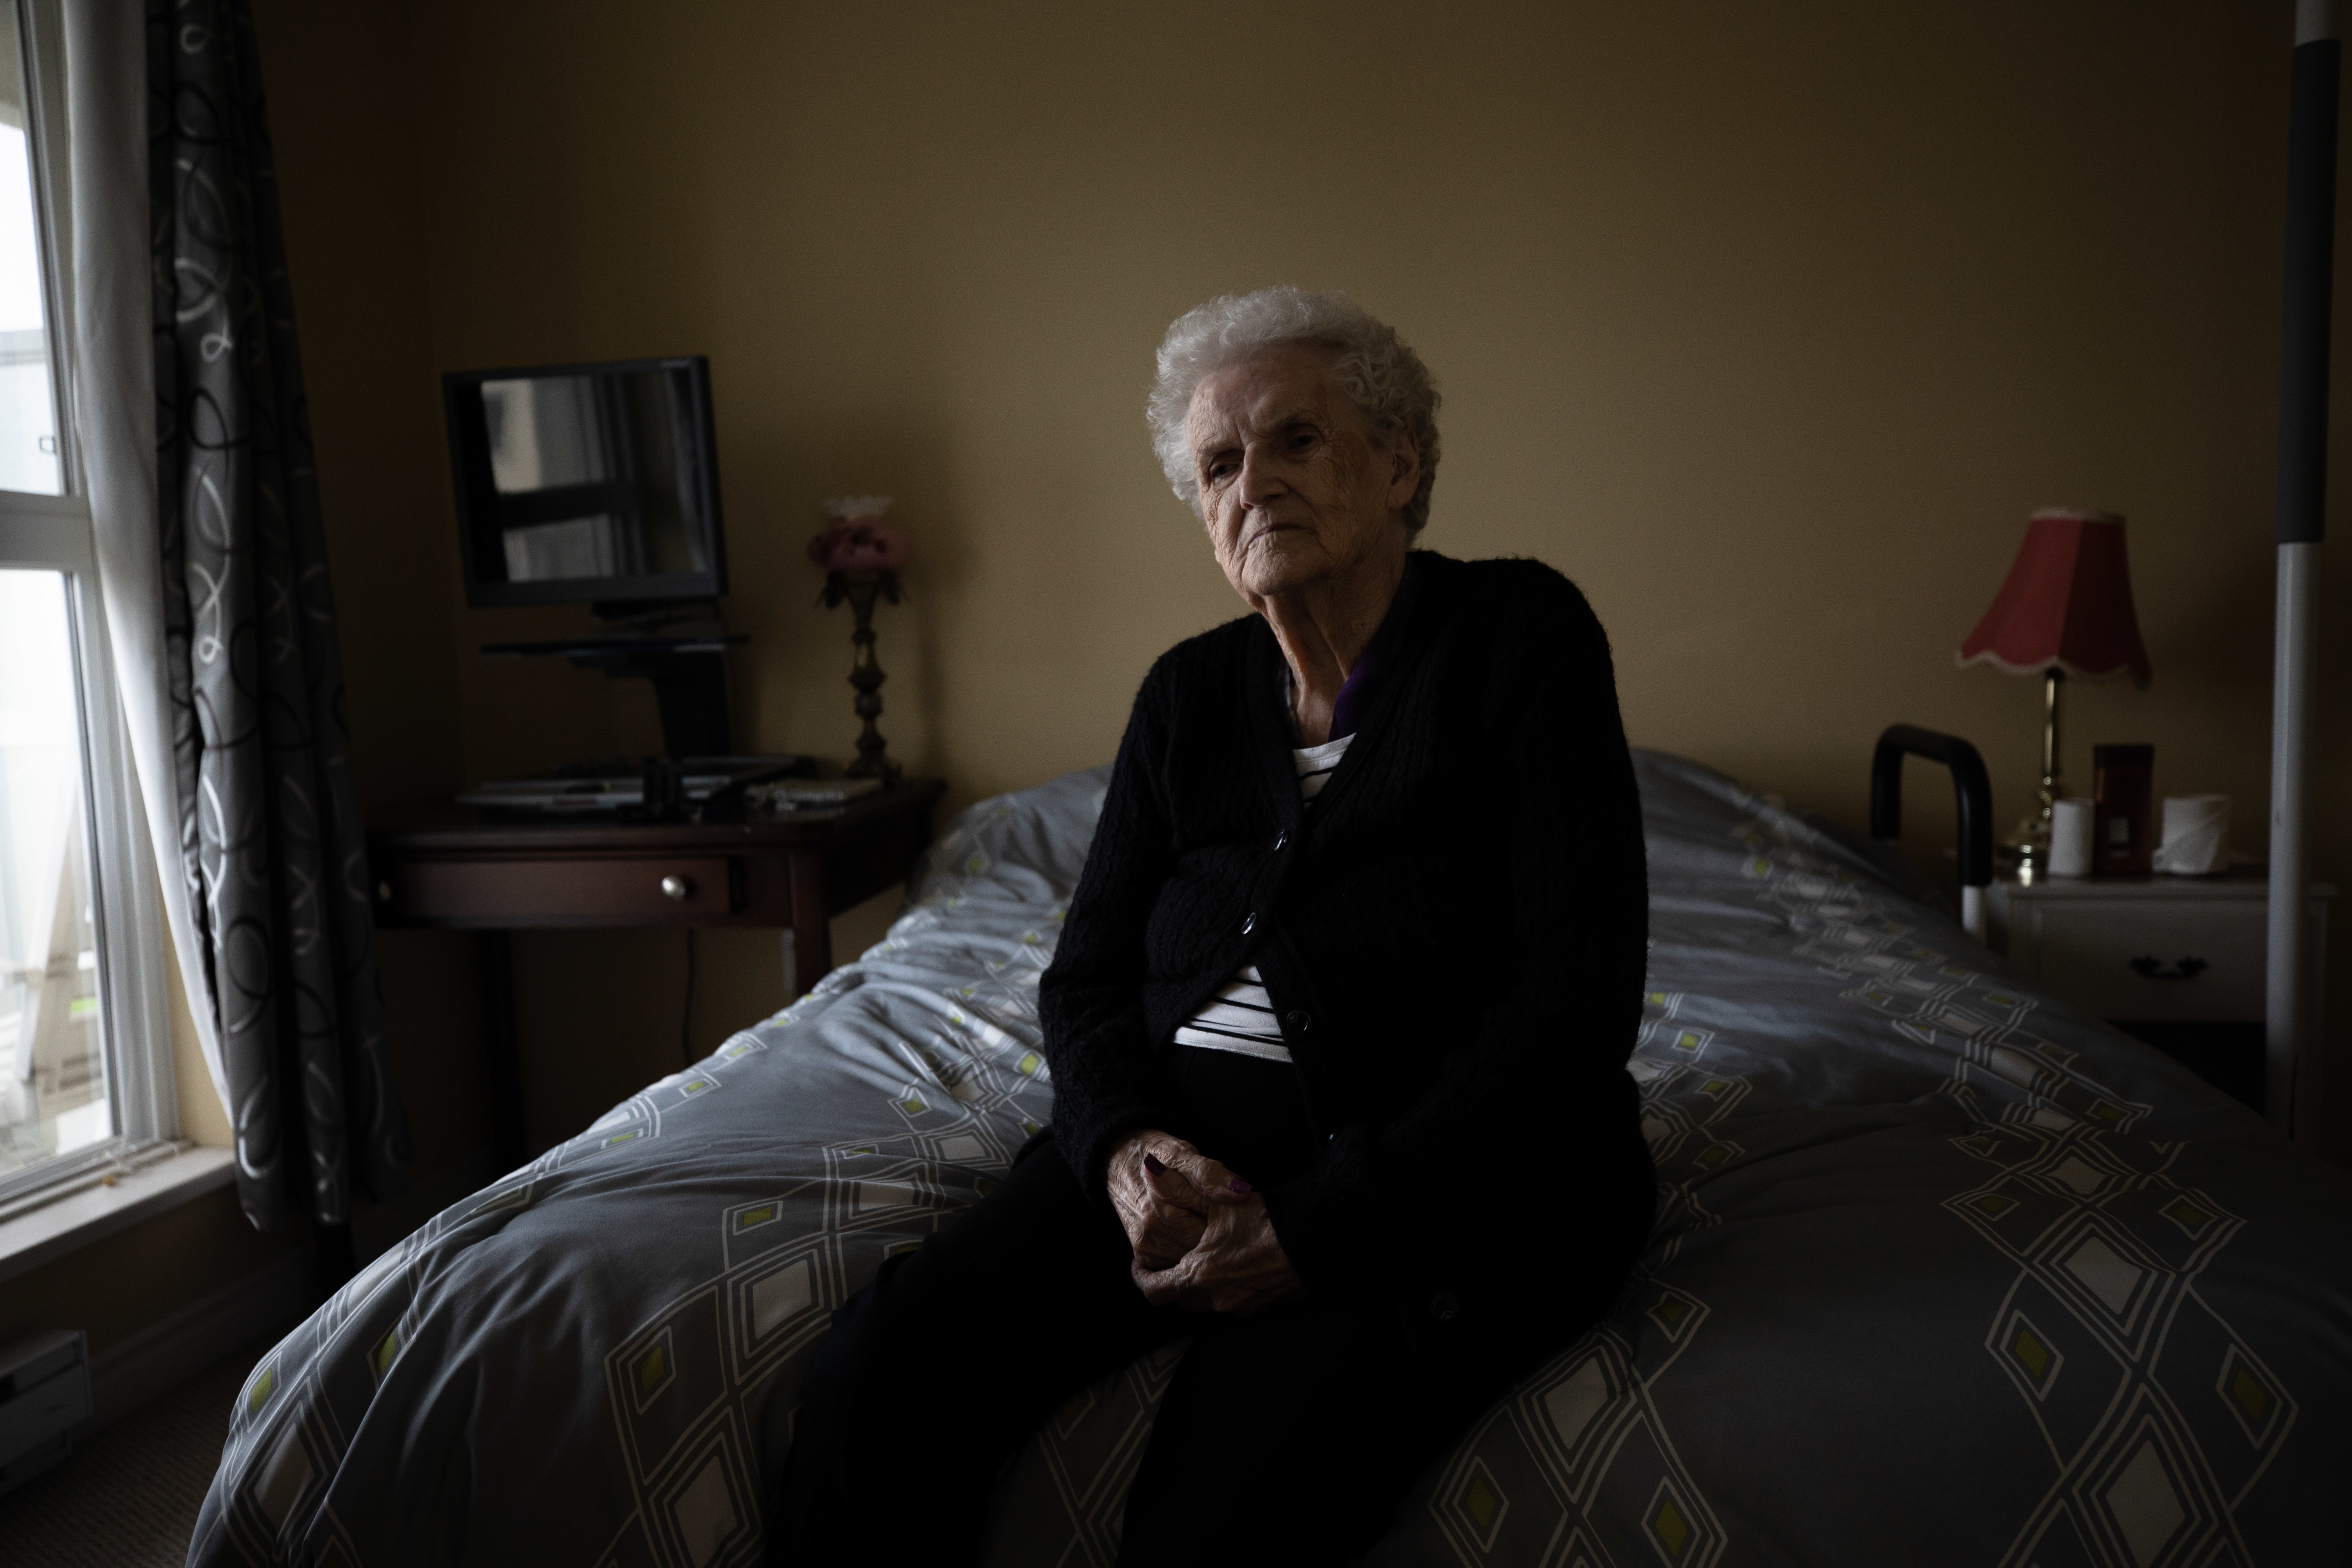 Rita Bedford, 95, was confined to her room as bed bugs fed on her for two weeks over the holidays last December. She is pictured in her new unit at The Cascades Care Community in Chilliwack on Wednesday, Oct. 23, 2019. (Maggie MacPherson/CBC)